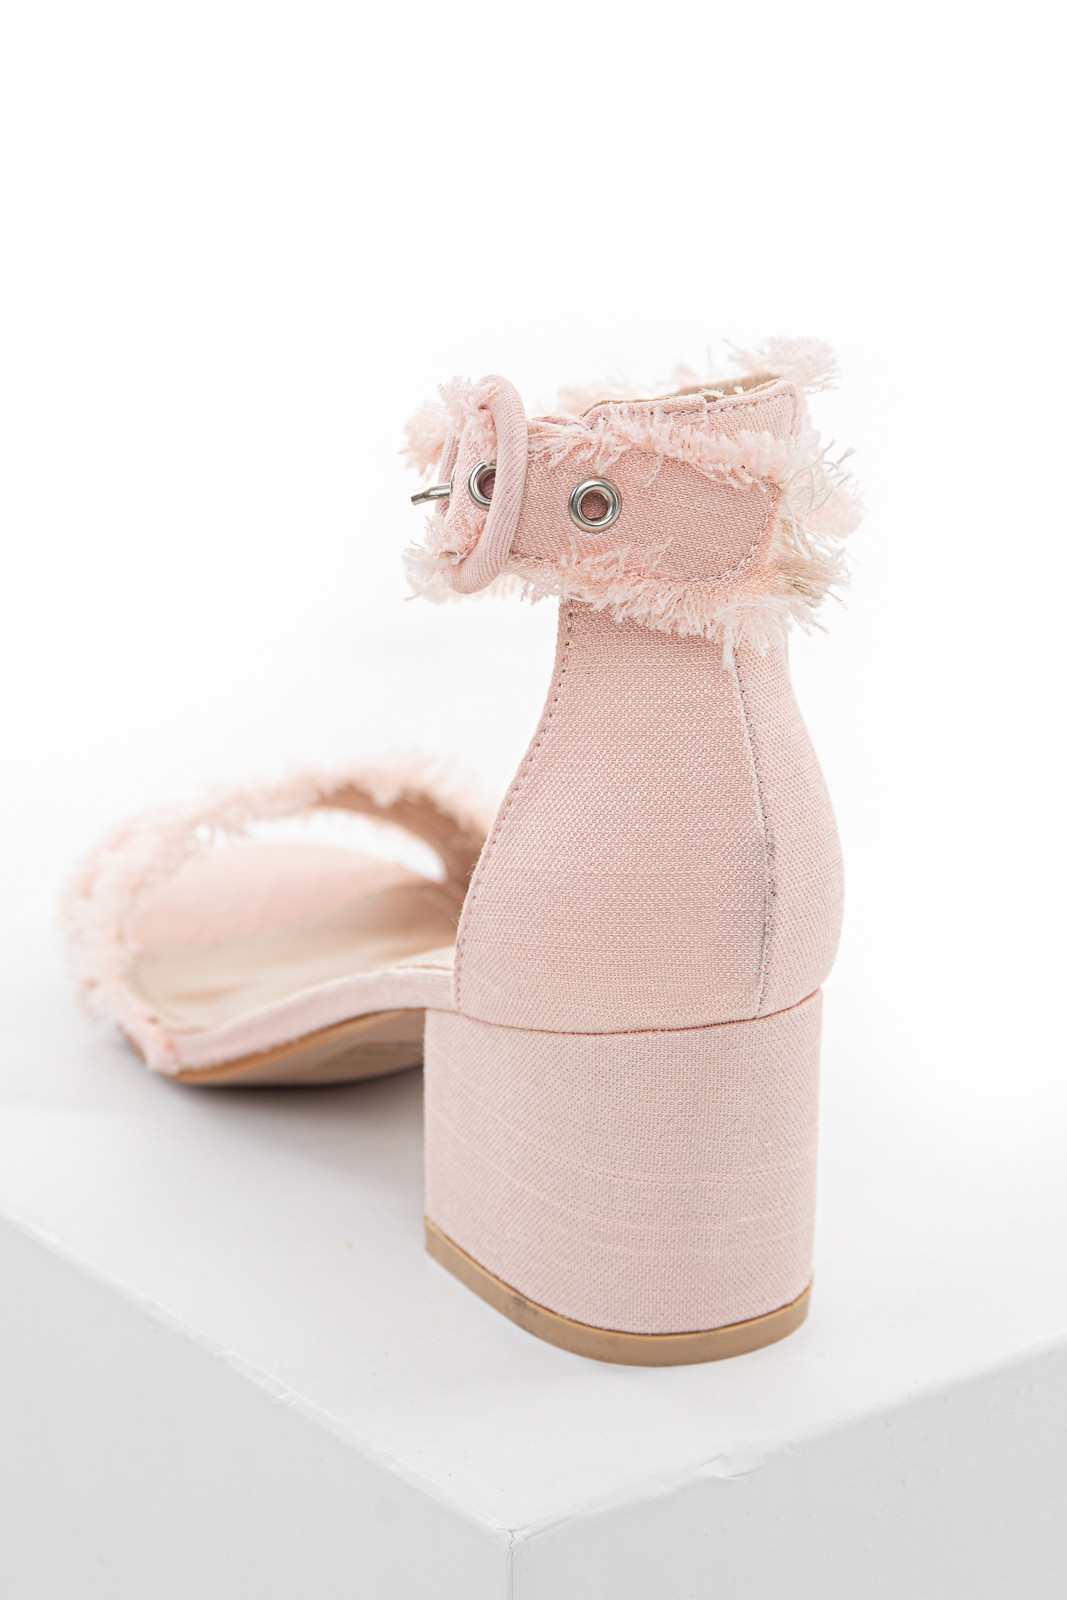 Cherry Blossom Frayed Edge Block Heel Sandals with Buckle